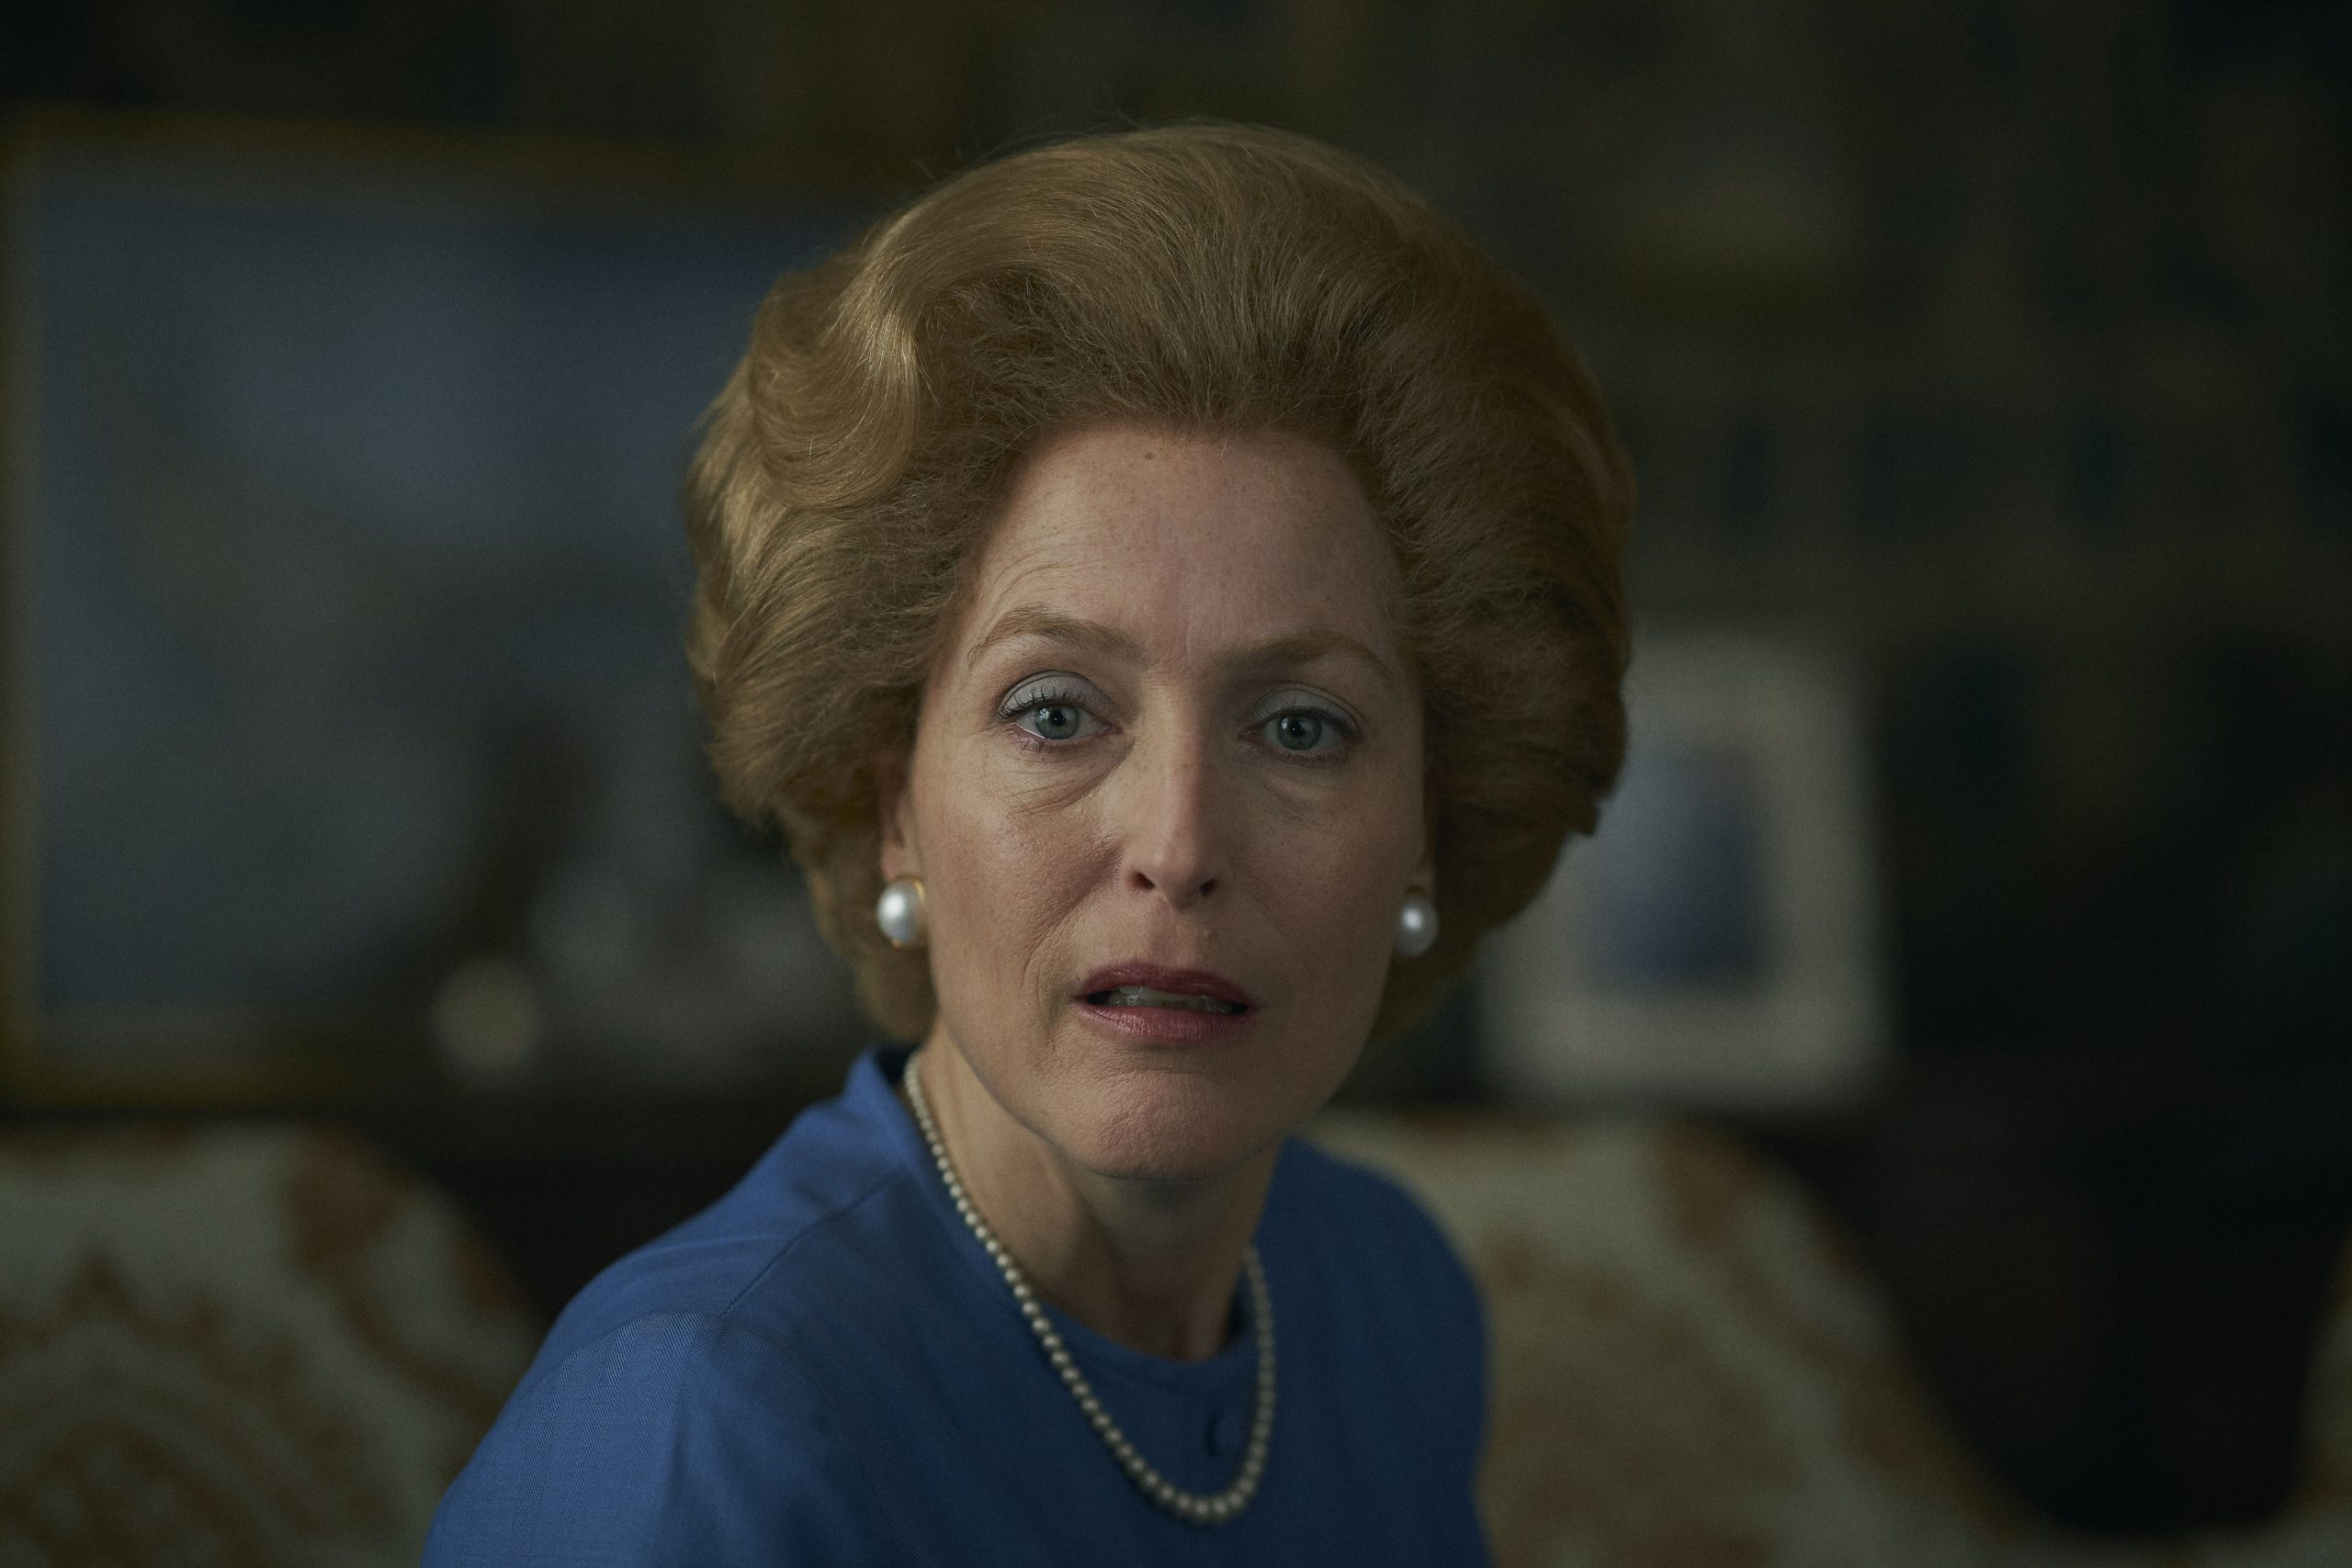 Gillian Anderson as Margaret Thatcher on The Crown season 4